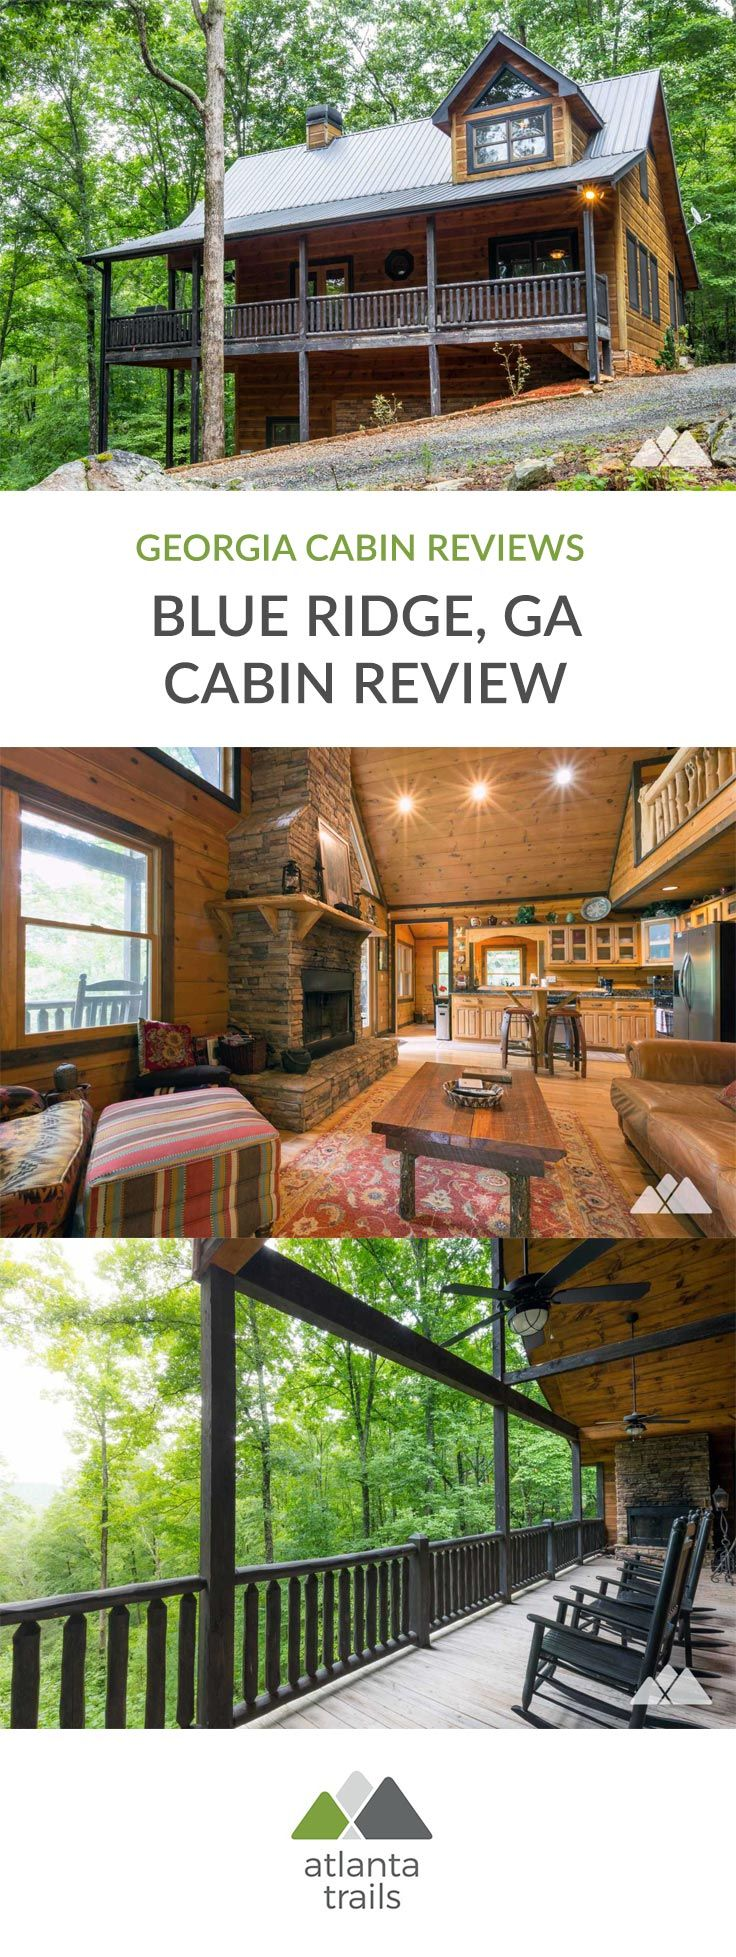 Southern Comfort Cabin Rentals review: Hawks Ridge in Blue